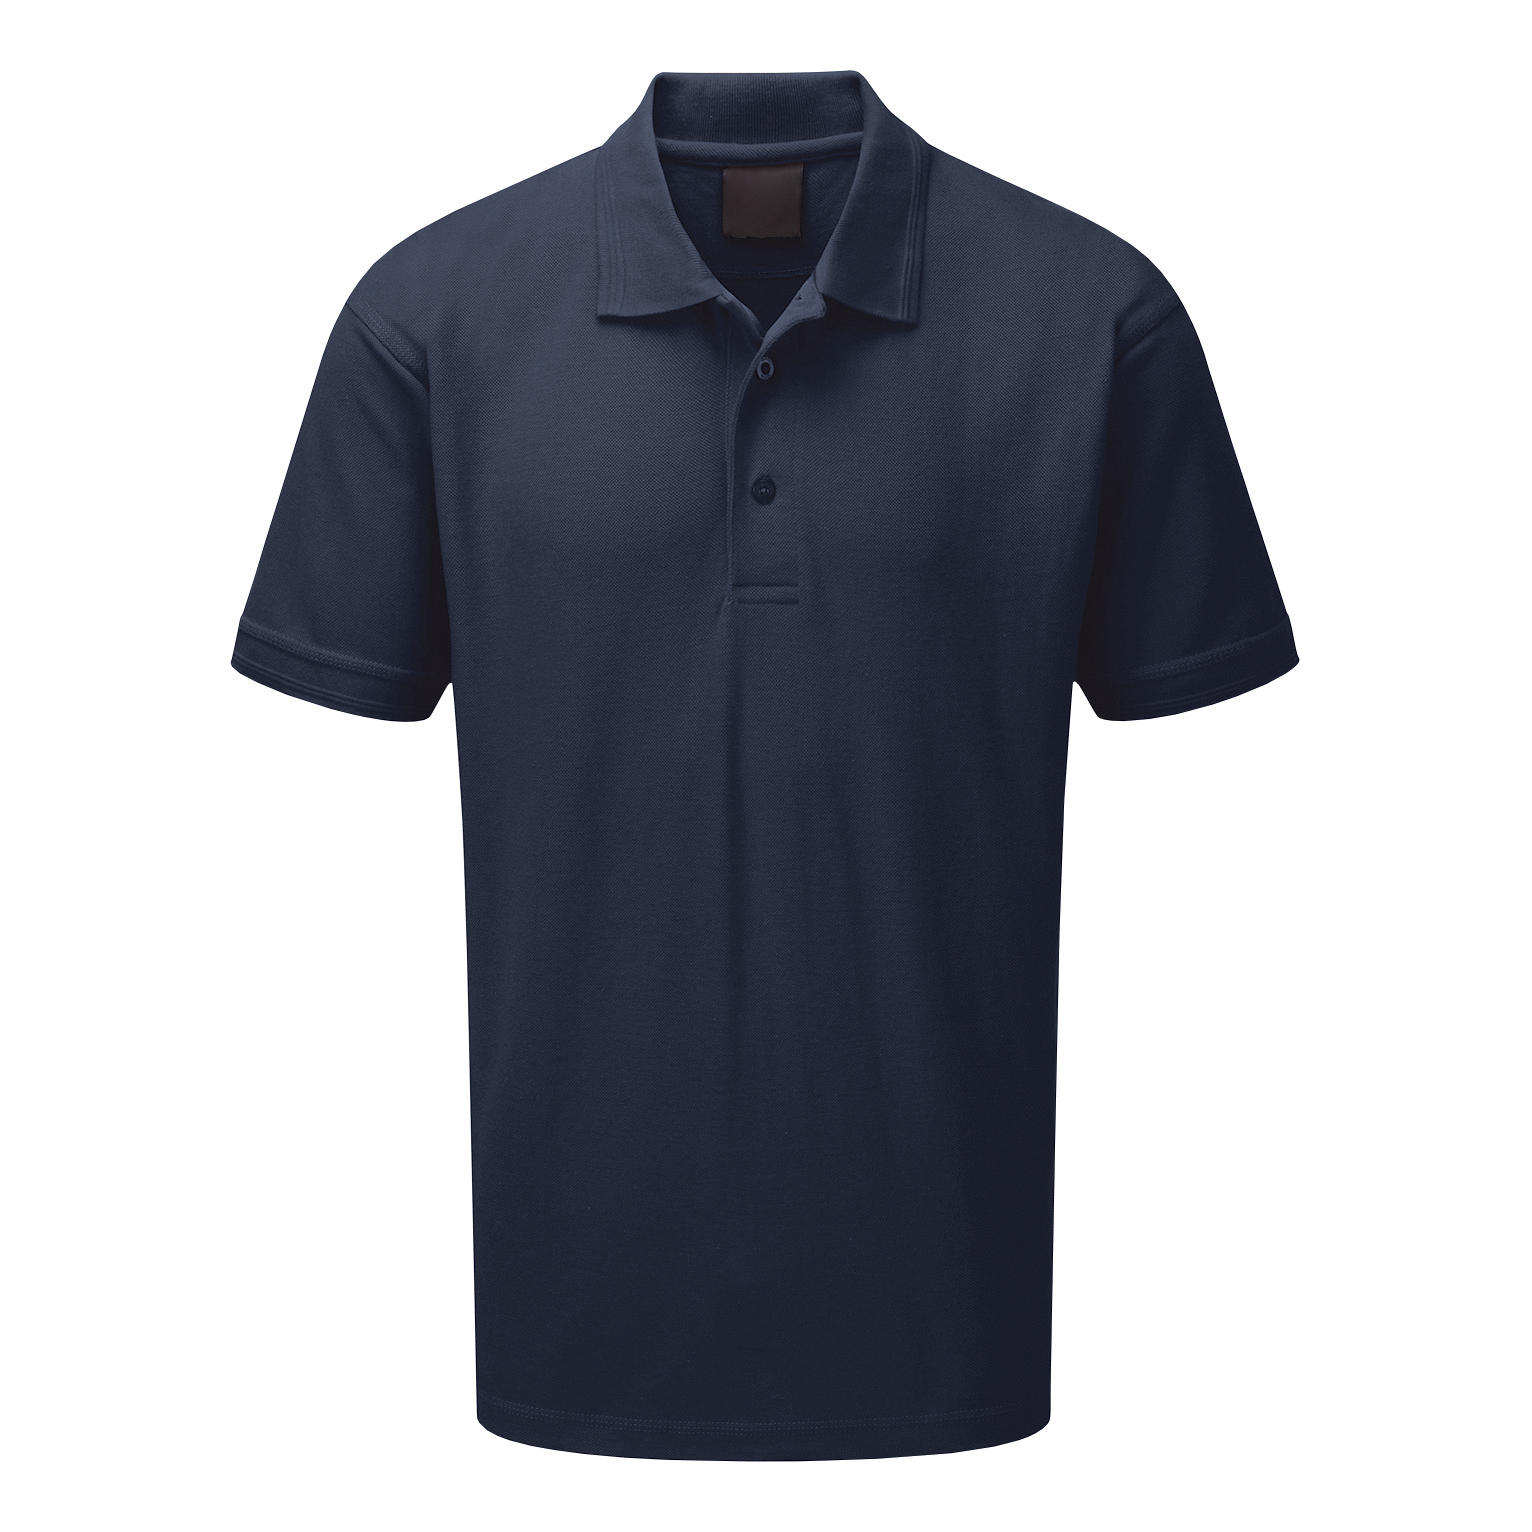 Click Workwear Polo Shirt Polycotton 200gsm 2XL Navy Blue Ref CLPKSNXXL 1-3 Days Lead Time